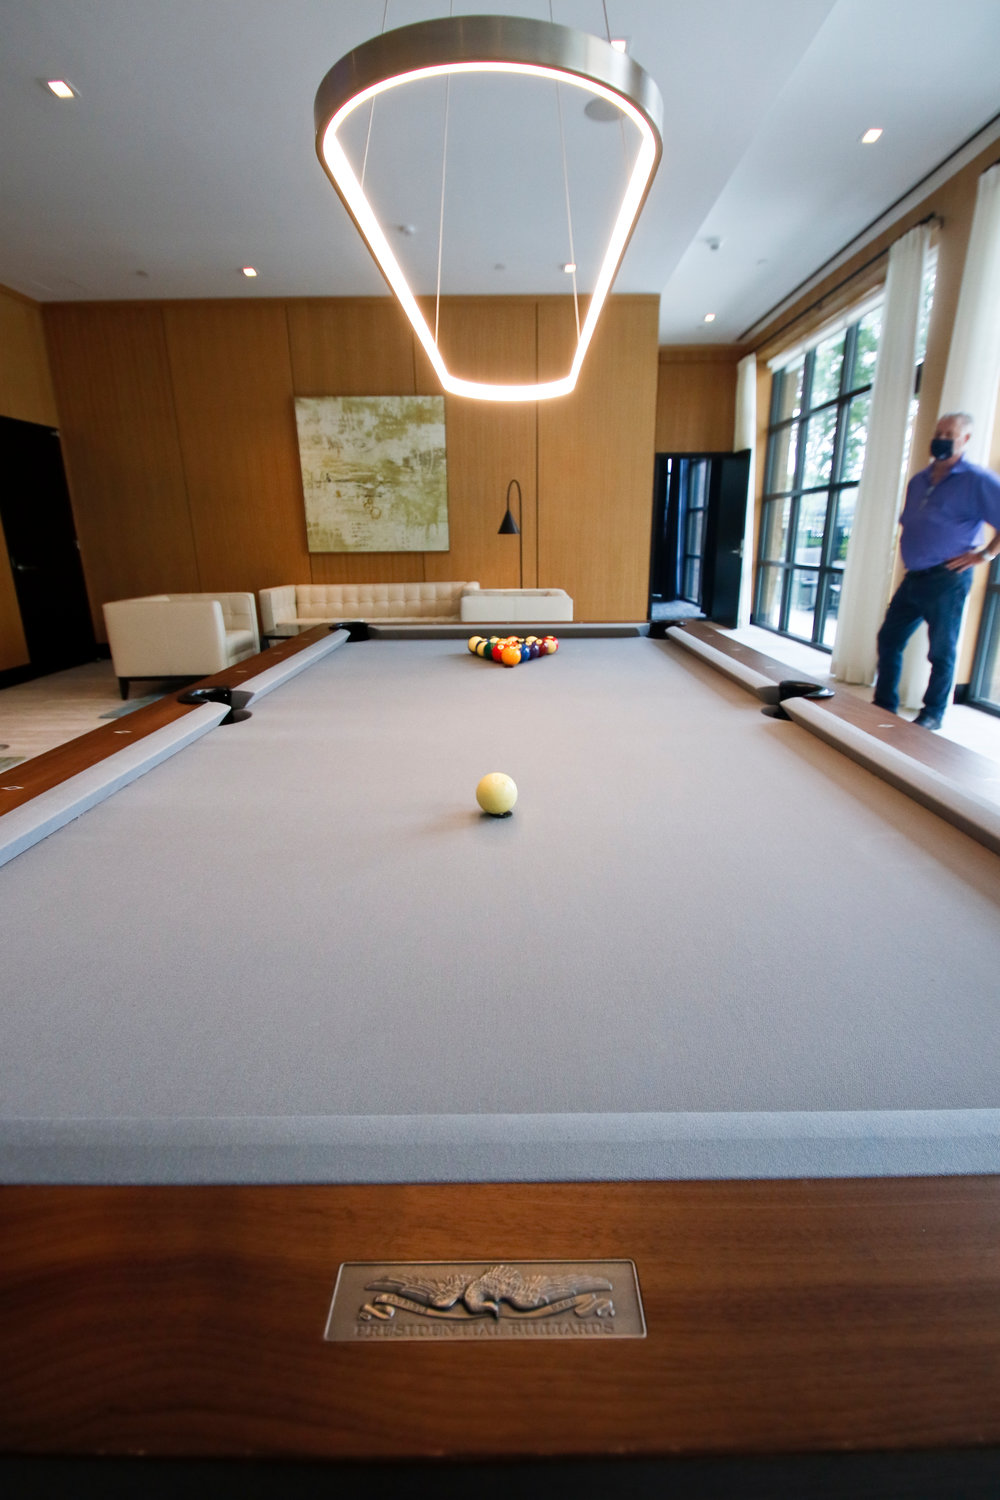 The residential complexes within Garvies Point comes with amenities, including this game room inside The Beacon.